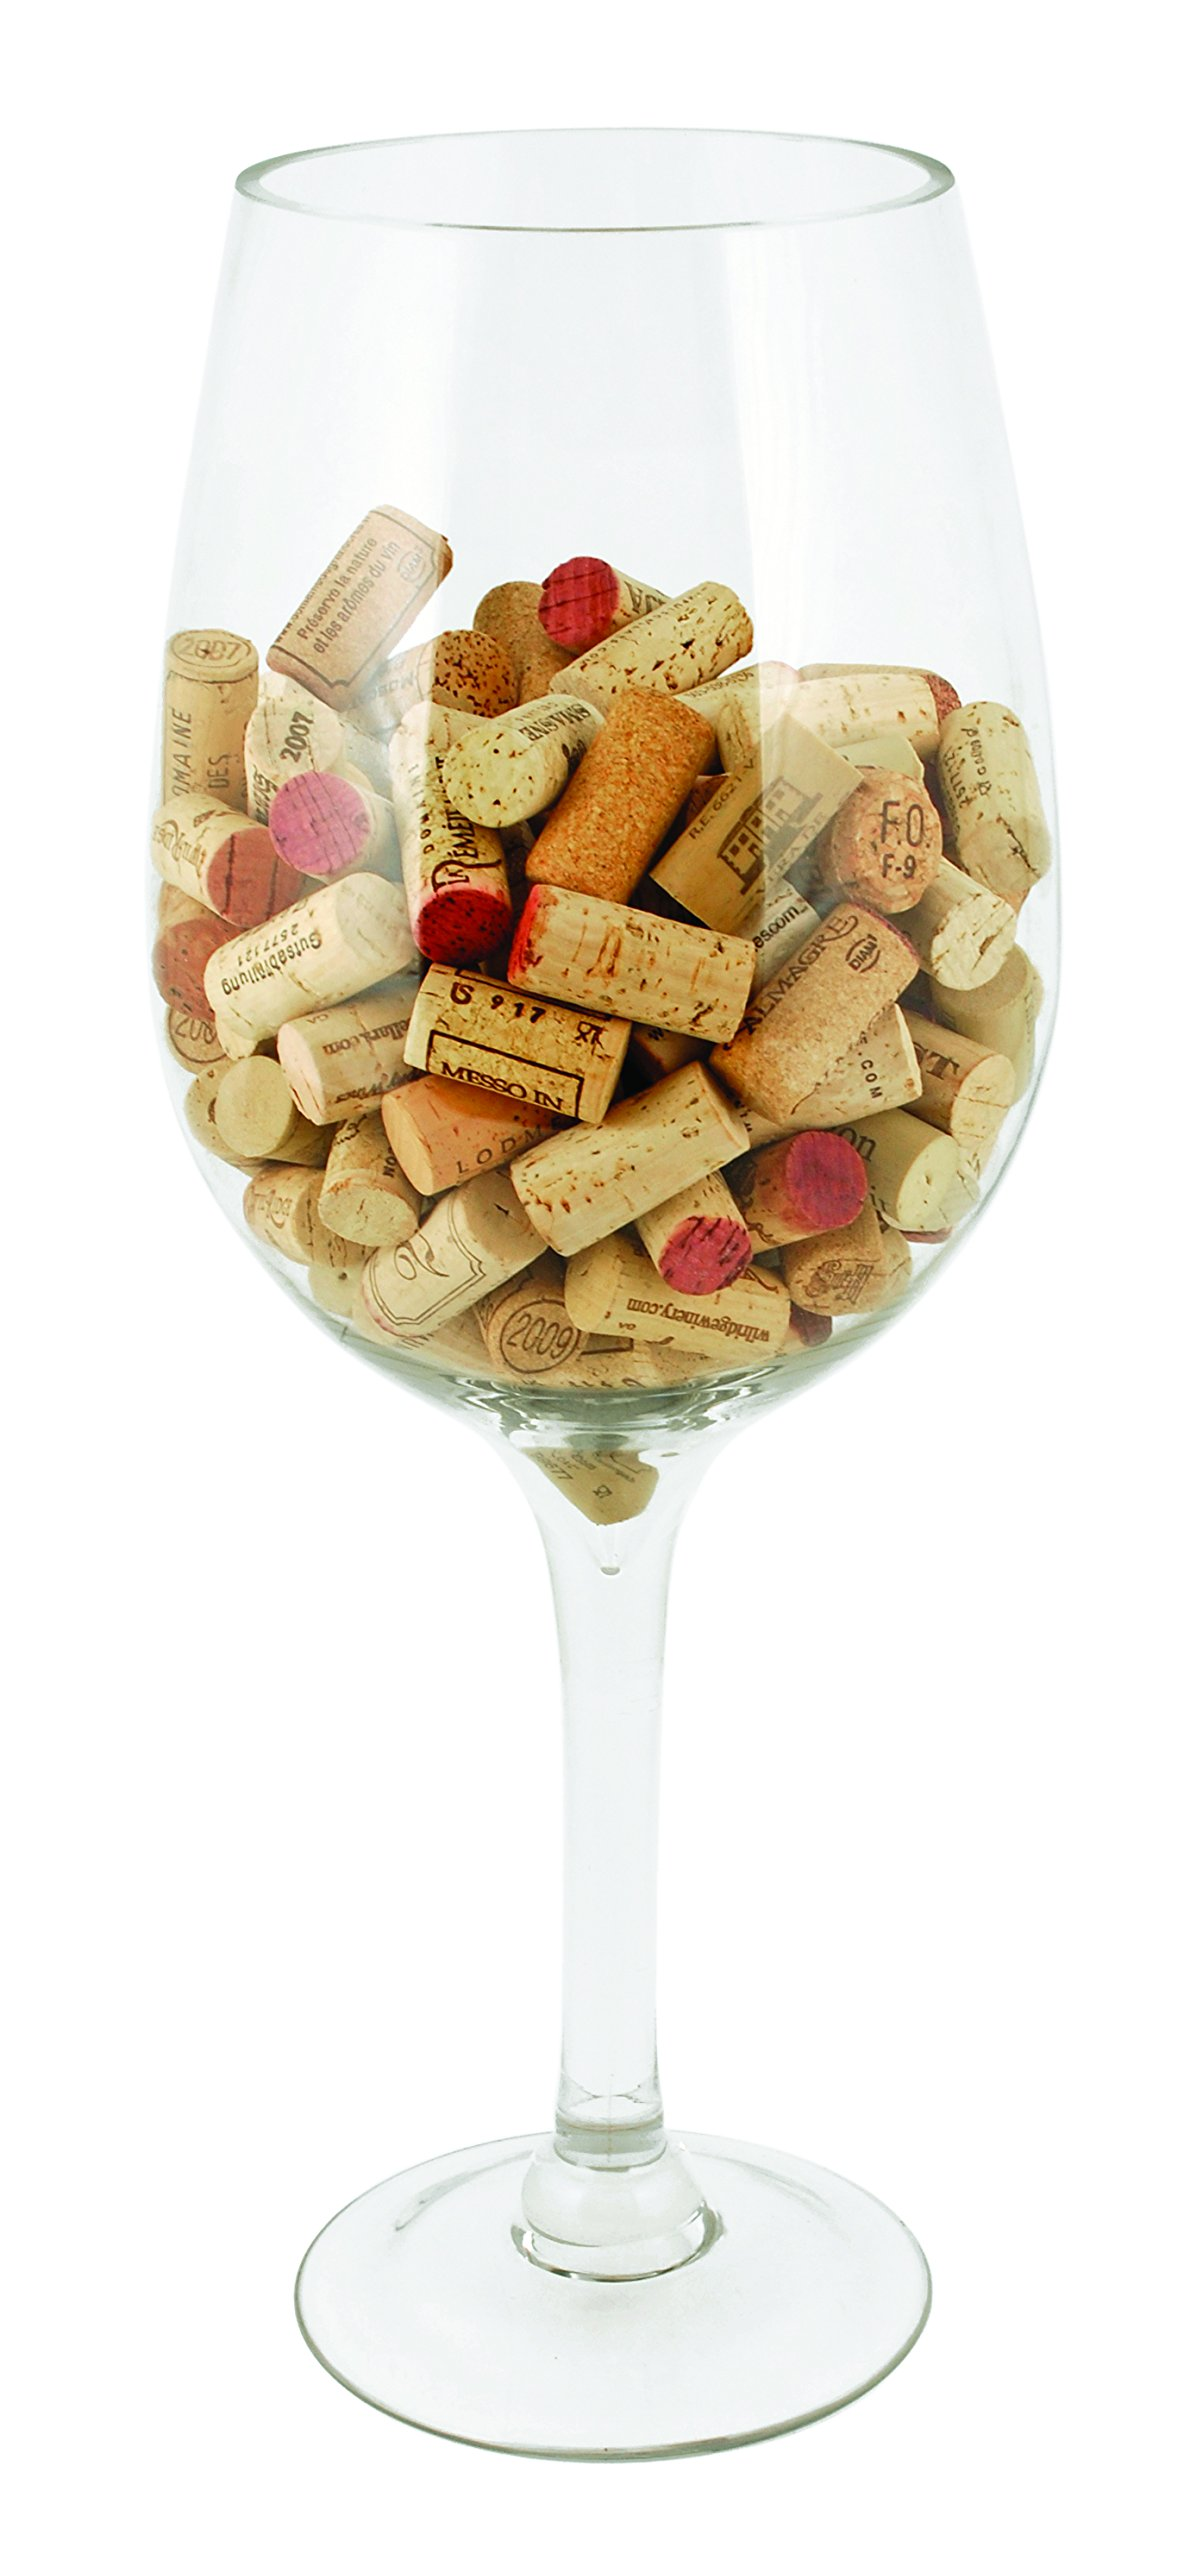 True 2275 Big Bordeaux Glass: Cork Holder Set of 1 by True (Image #2)